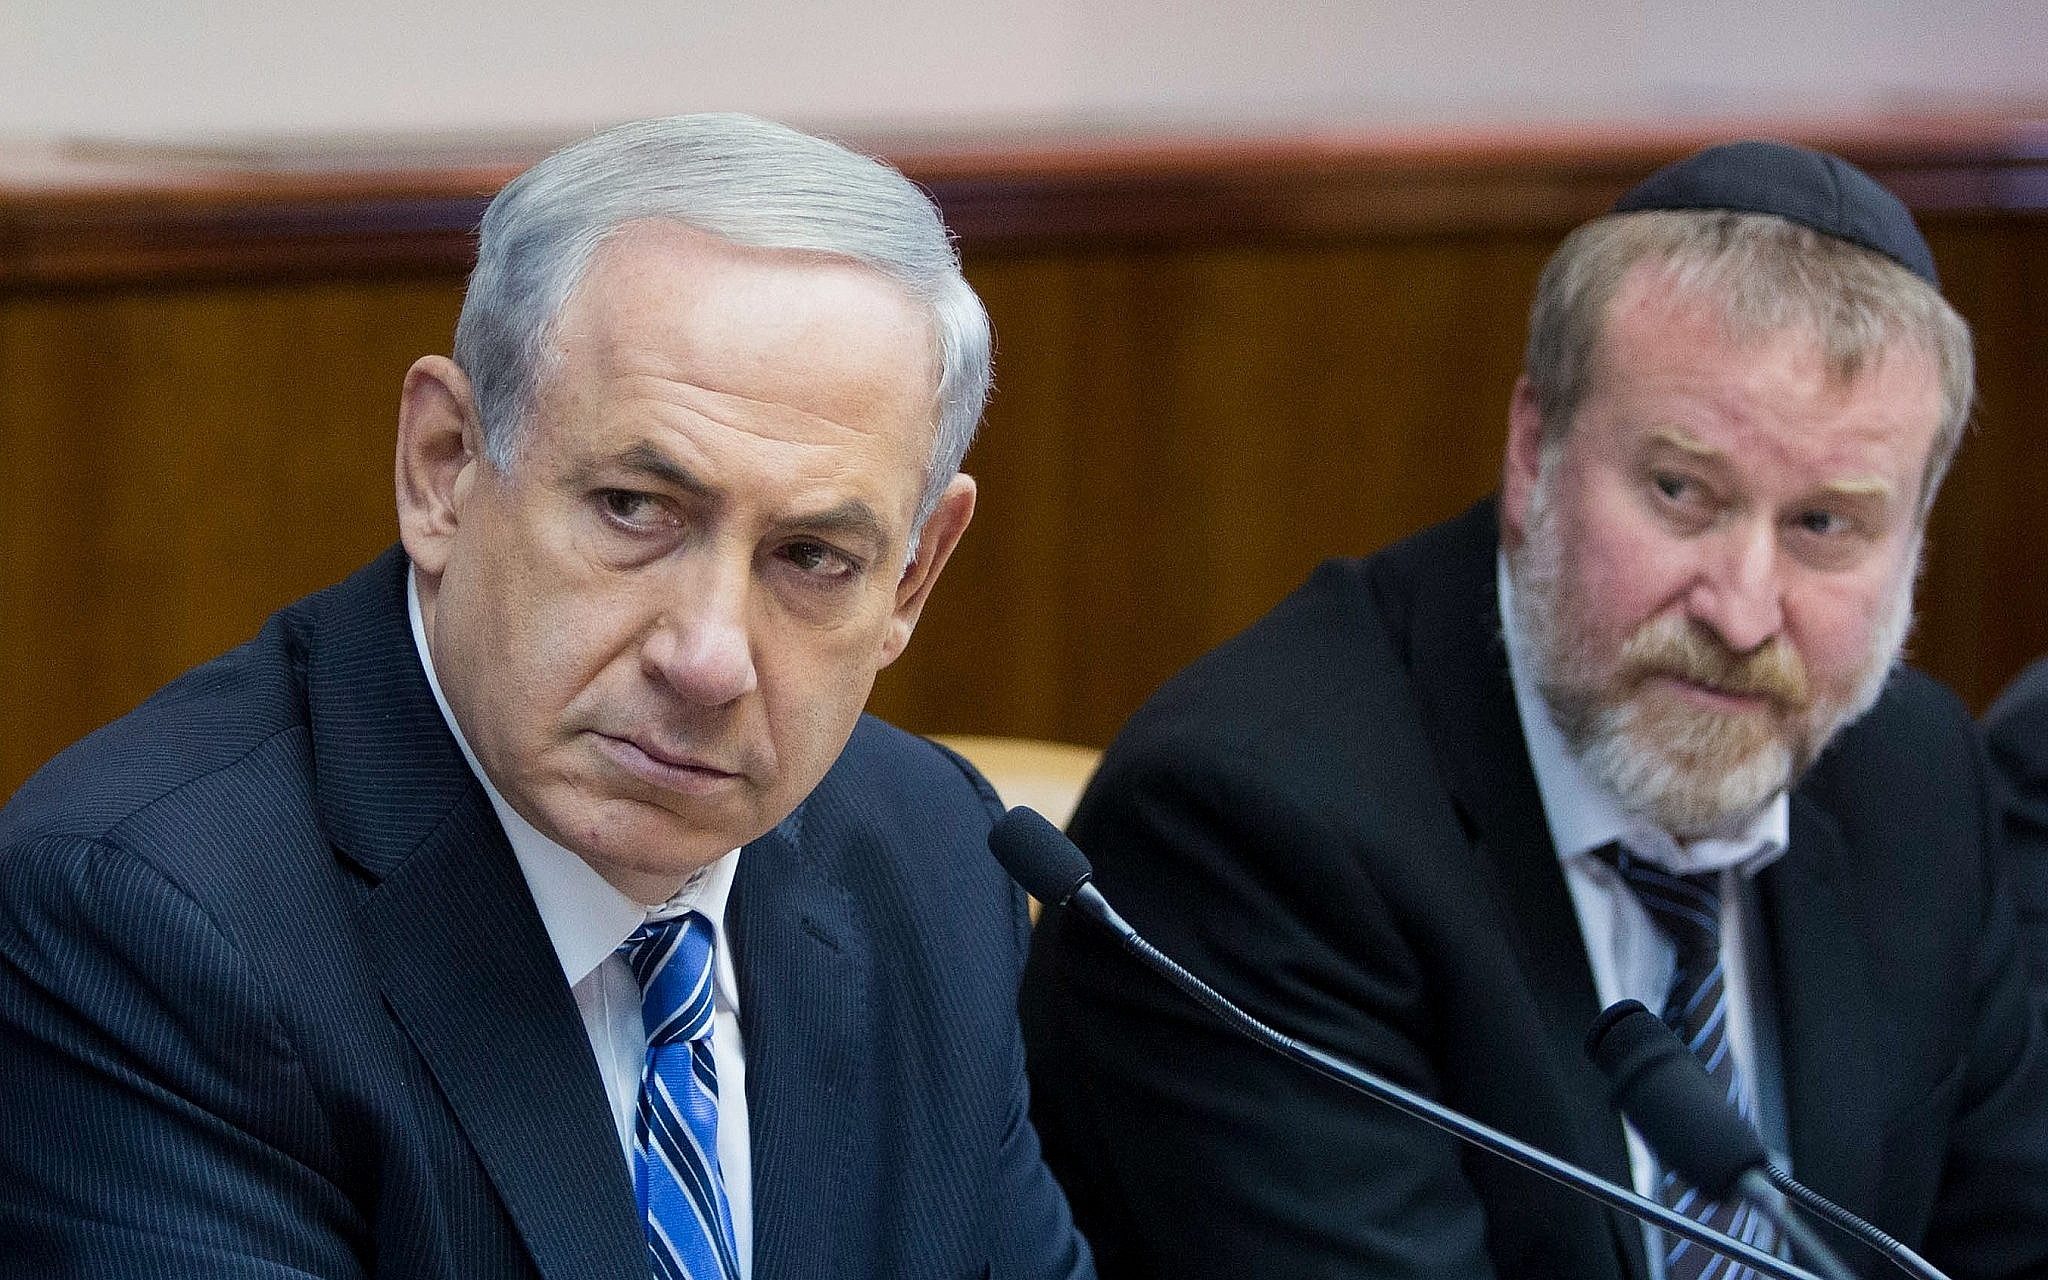 Prime Minister Benjamin Netanyahu (left) and then-cabinet secretary Avichai Mandelblit at a weekly cabinet meeting at the Prime Minister's Office, in Jerusalem on February 2, 2014. (Yonatan Sindel/Flash90)